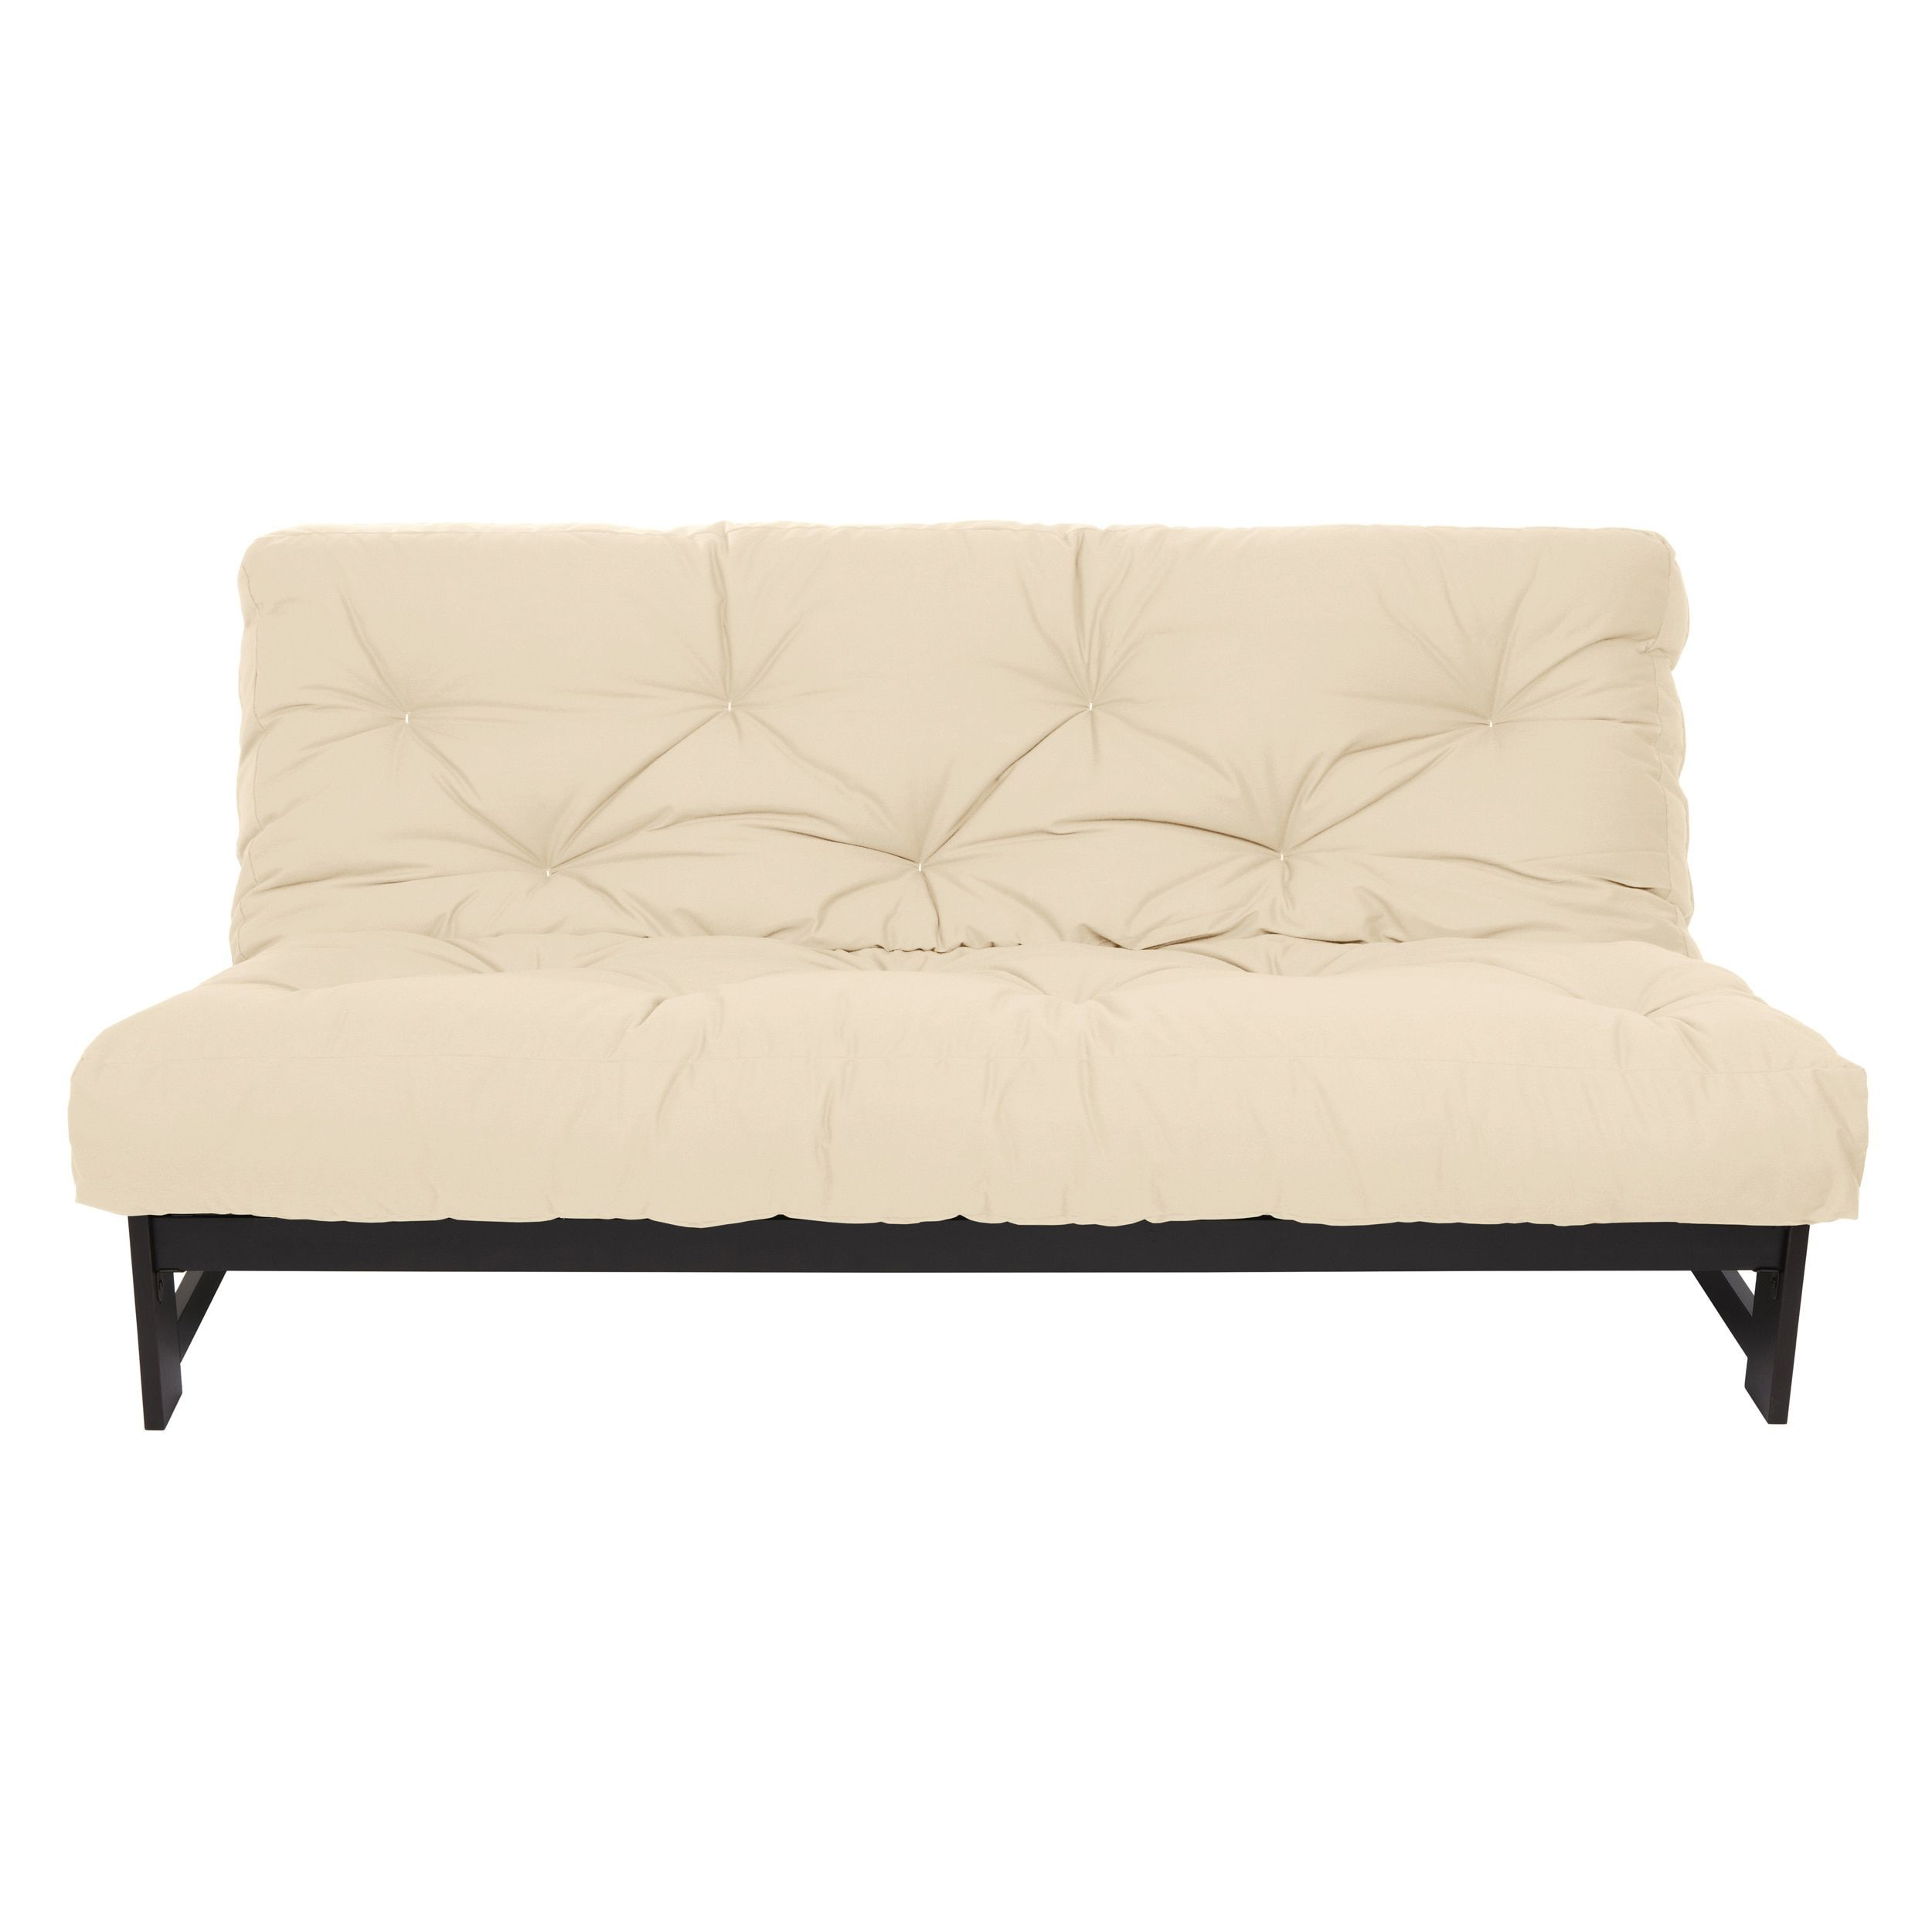 Queen Size Ivory 10 Inch Dual Gel Futon Mattress Osfs5403 Beige Off White